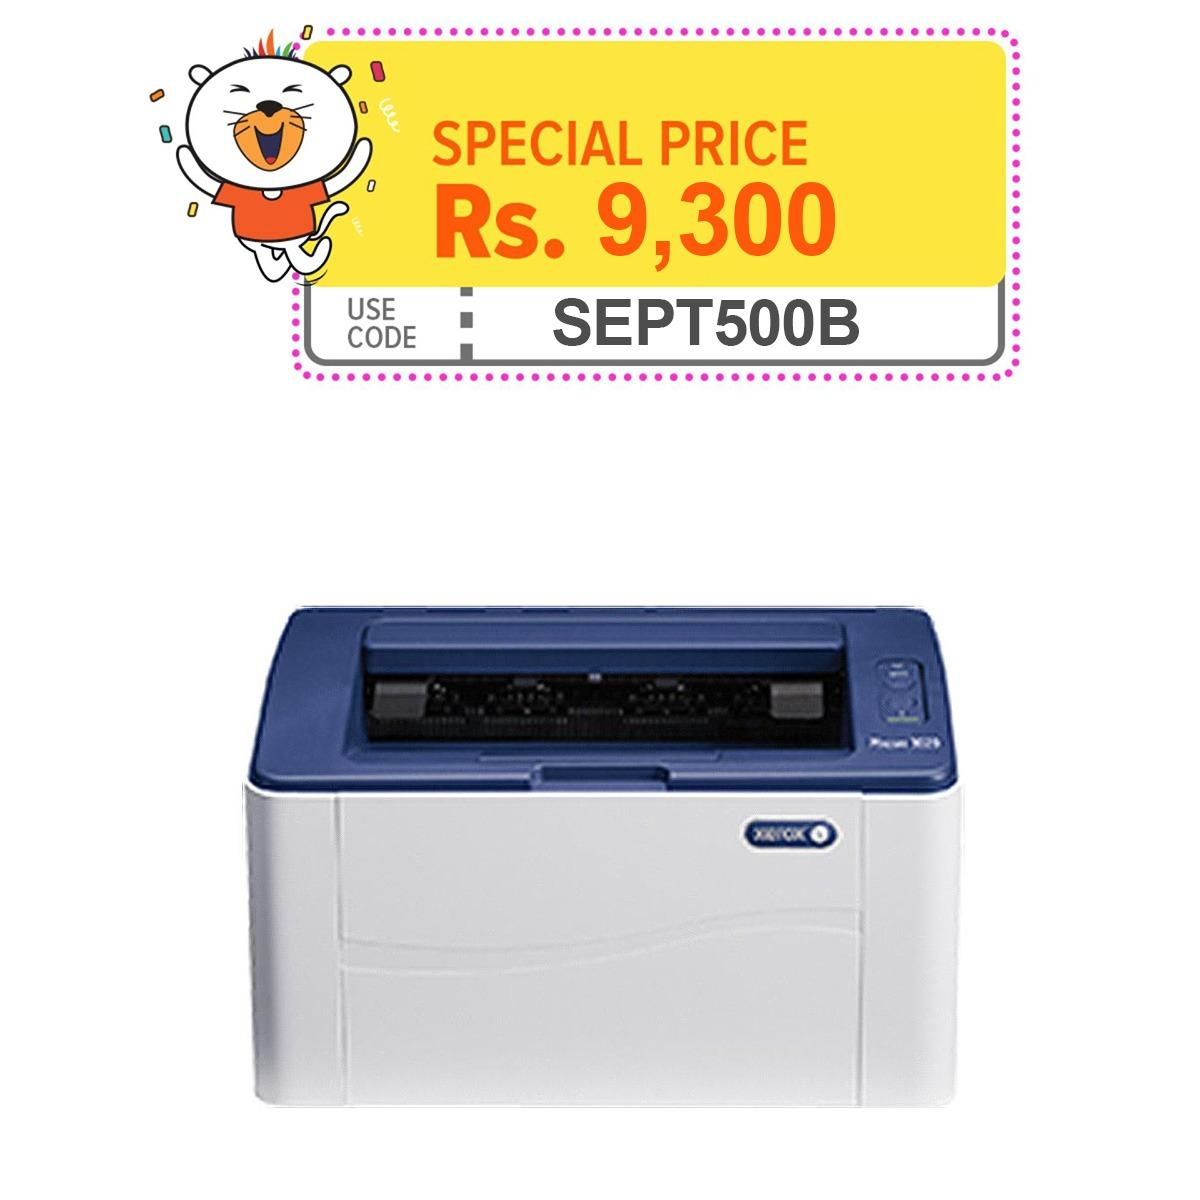 Xerox® Phaser 3020 - Monochrome Laser Printer